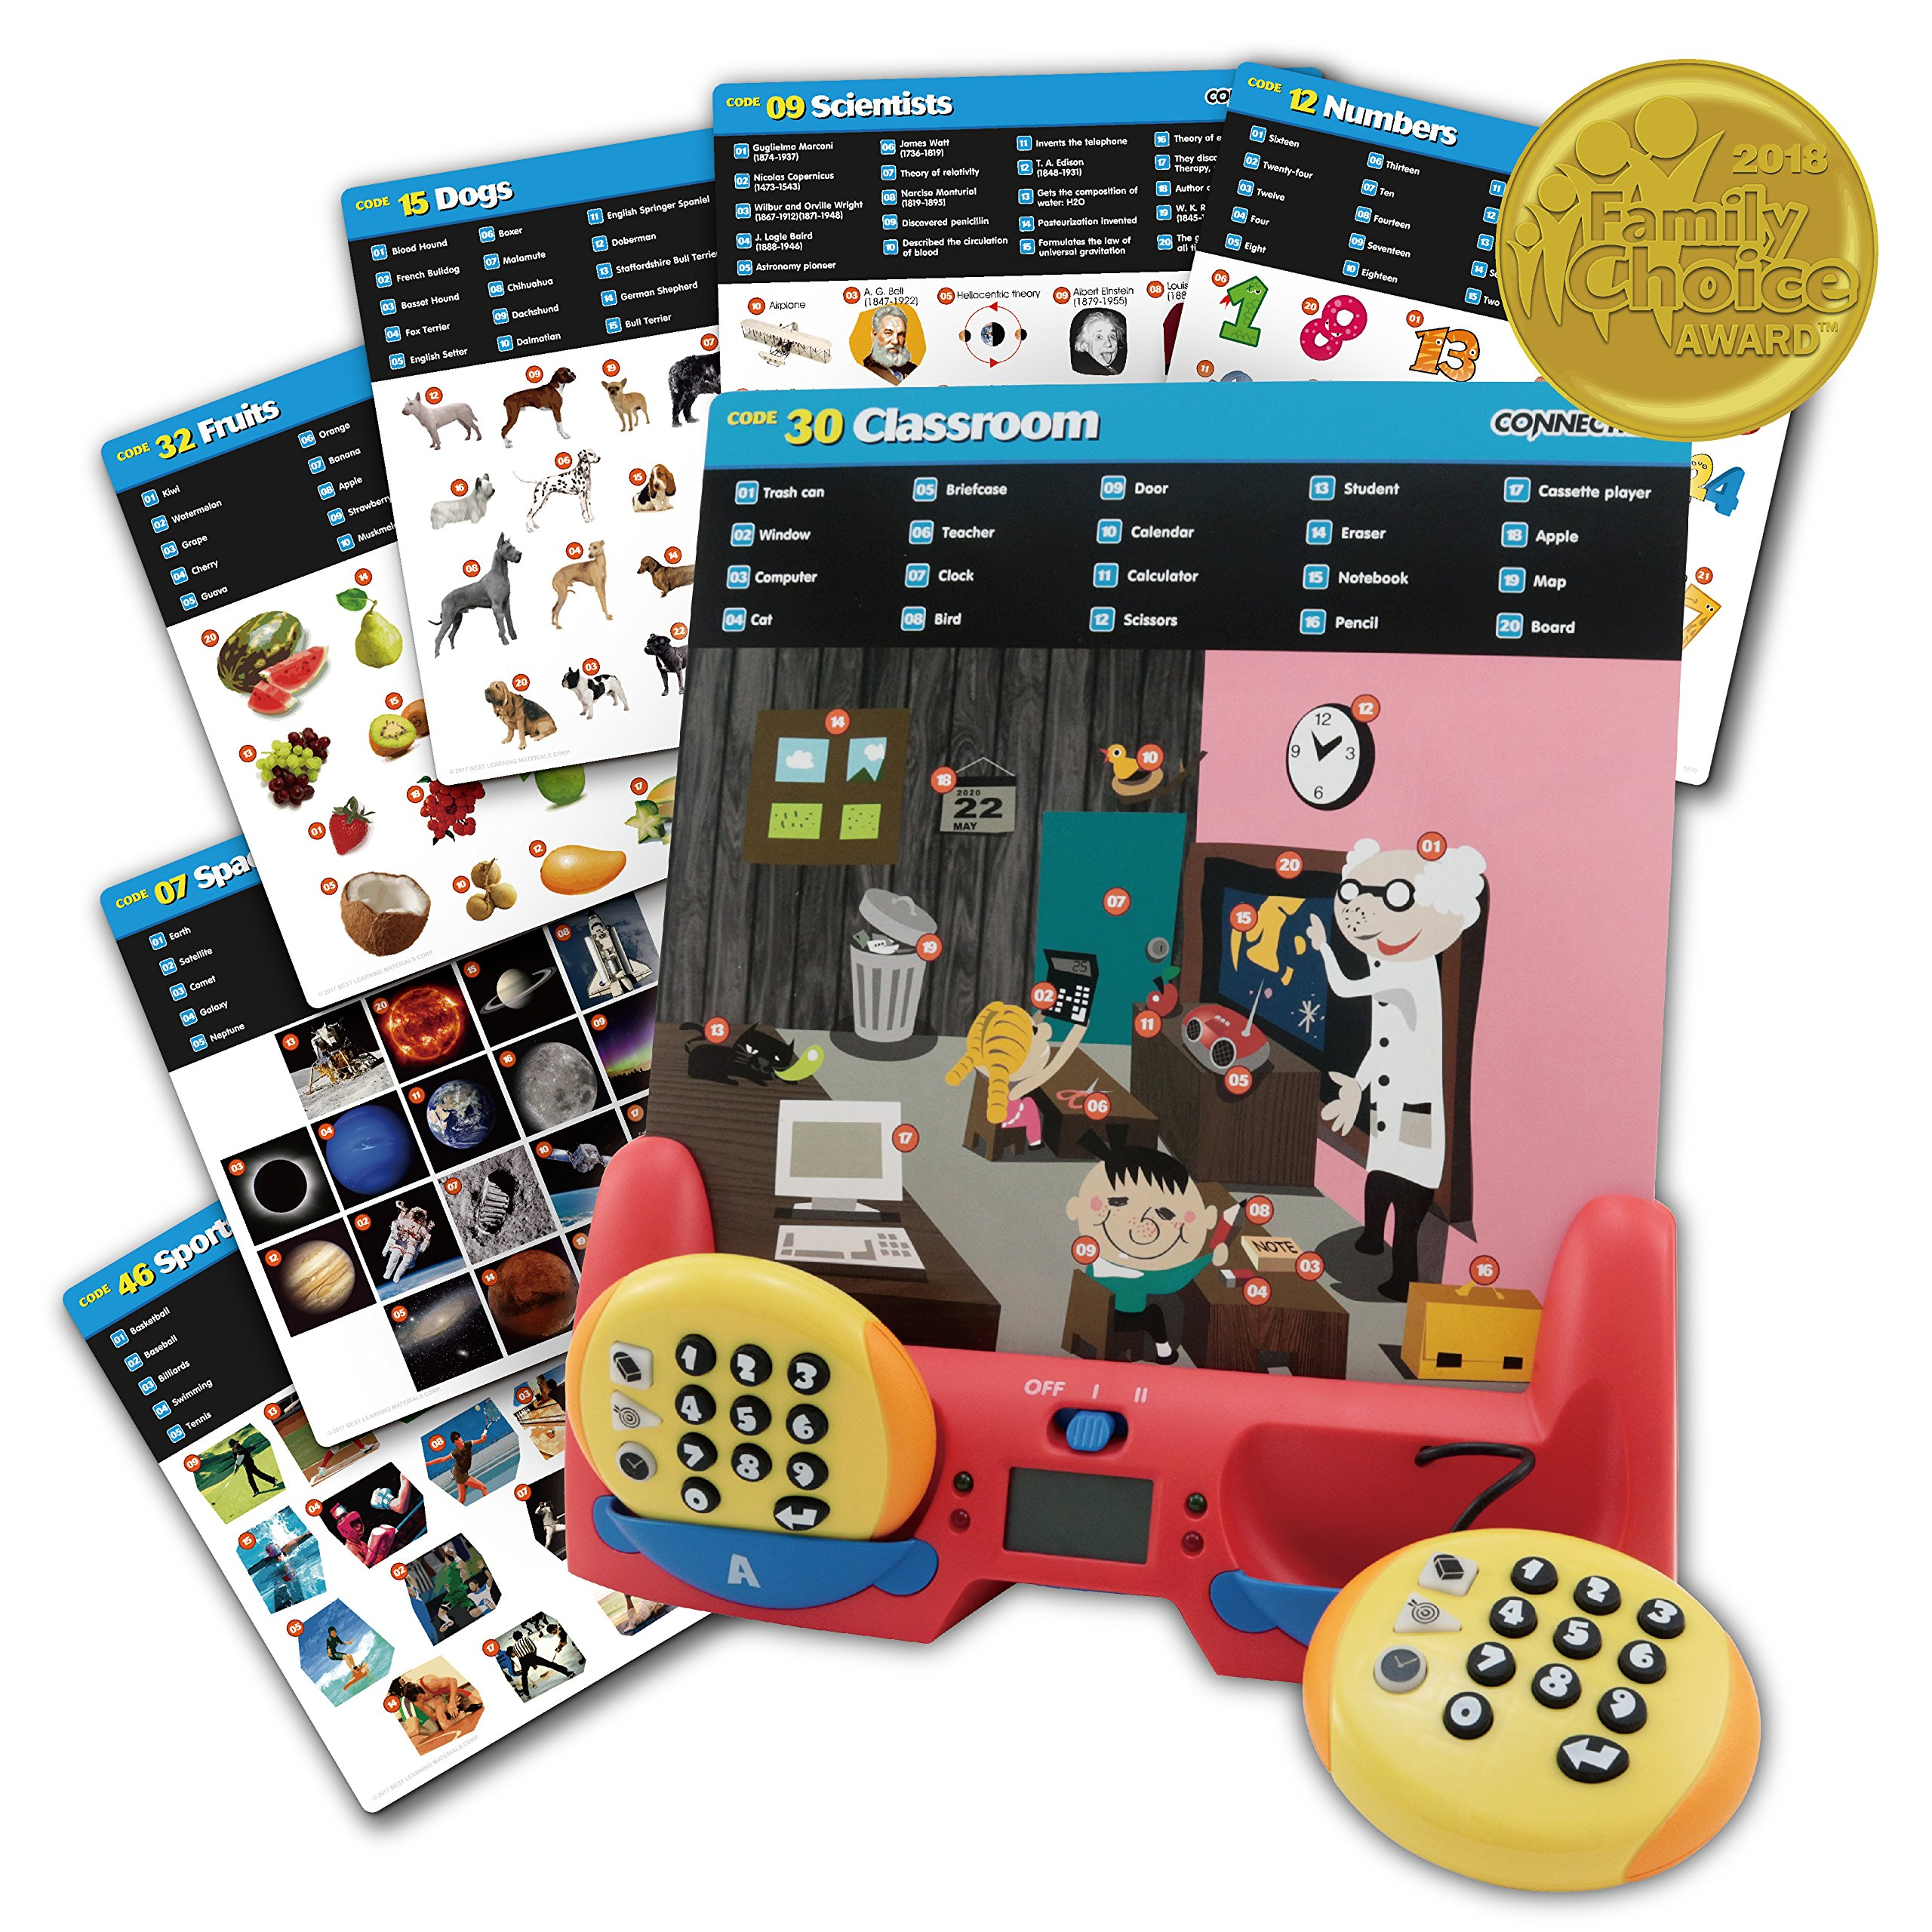 BEST LEARNING Connectrix - Exciting Educational Matching Game Toy for Kids 1 to 2 Players